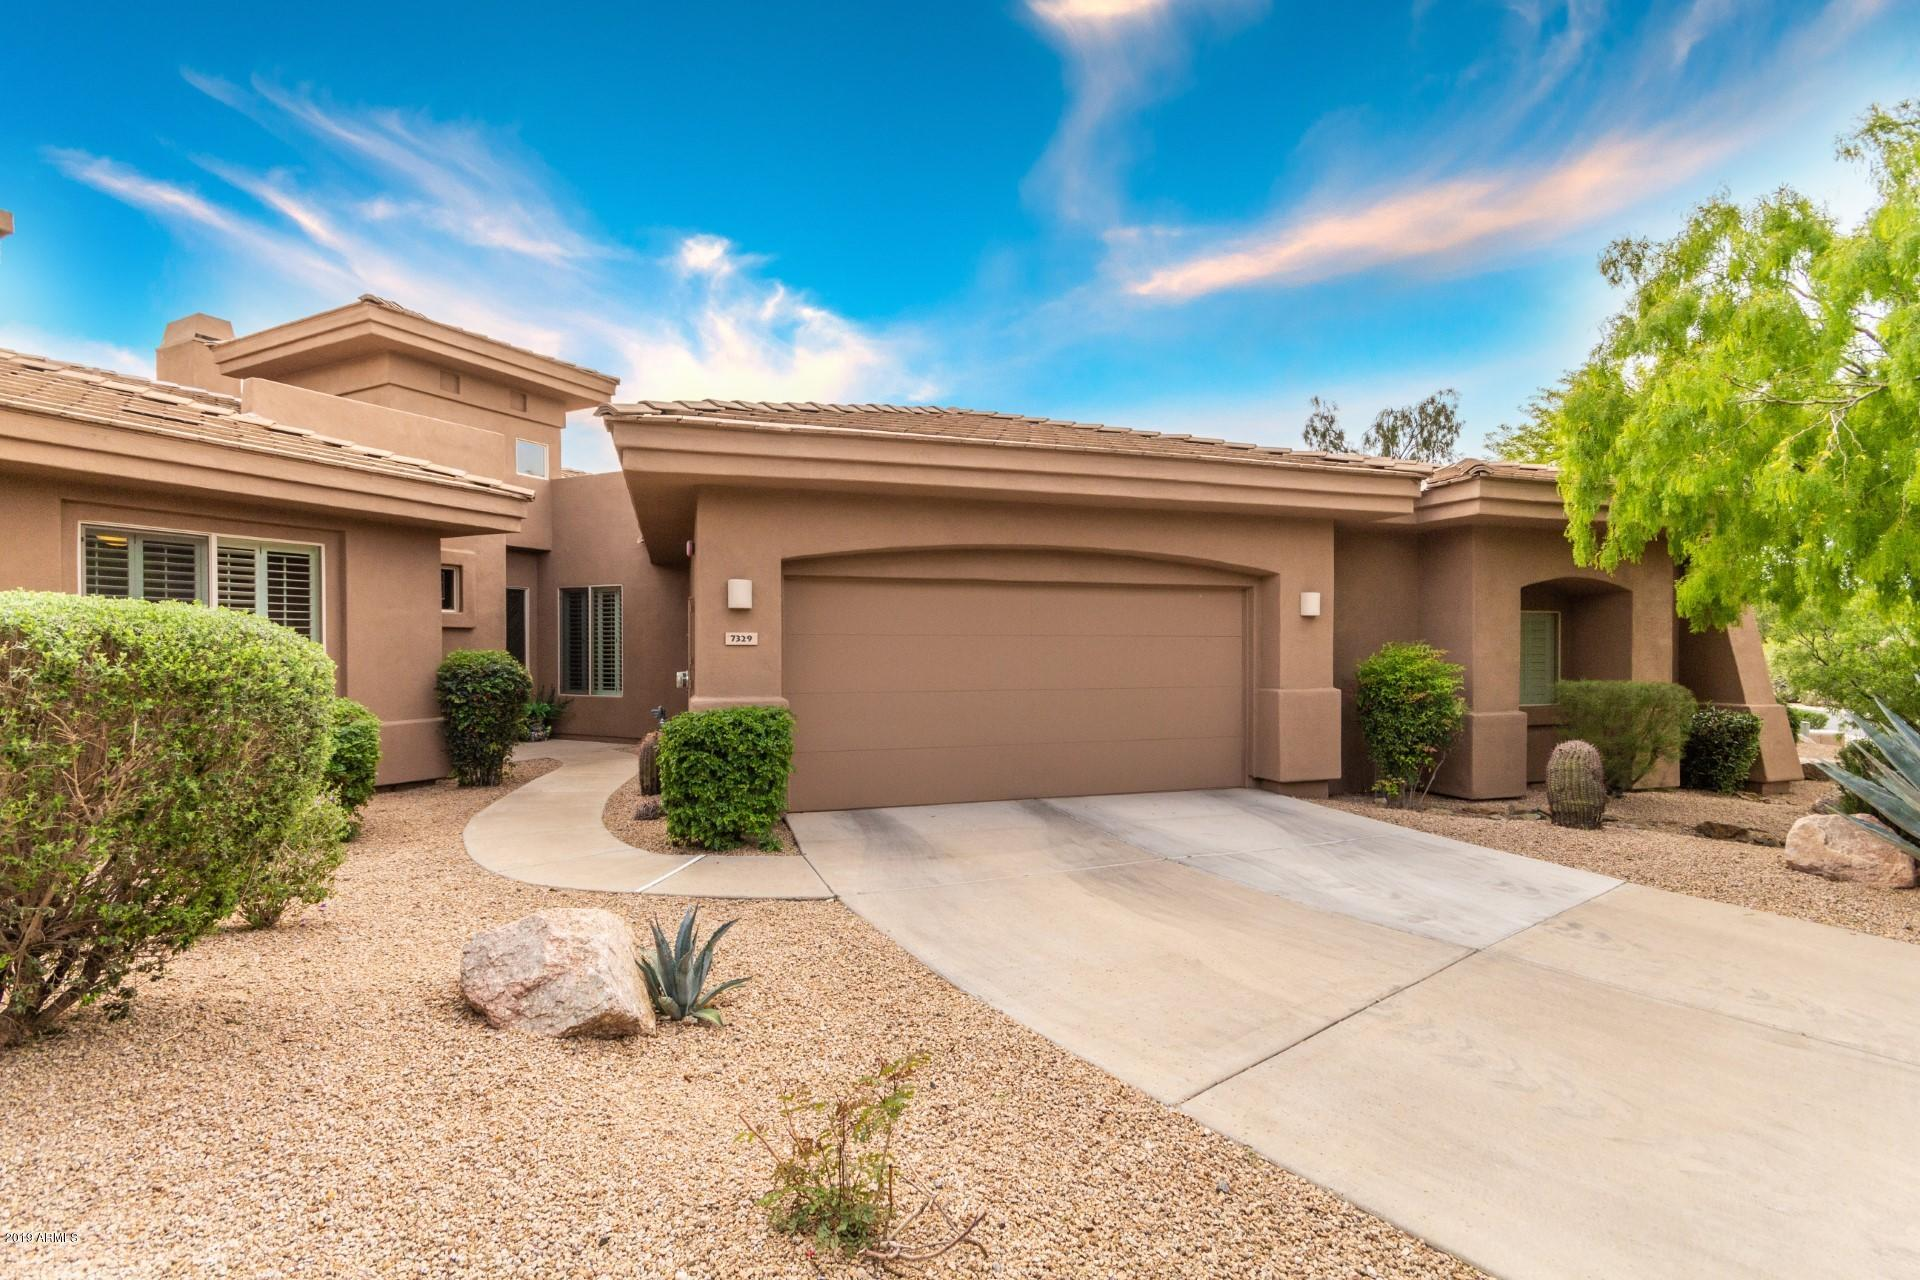 Photo of 7329 E CRIMSON SKY Trail, Scottsdale, AZ 85266